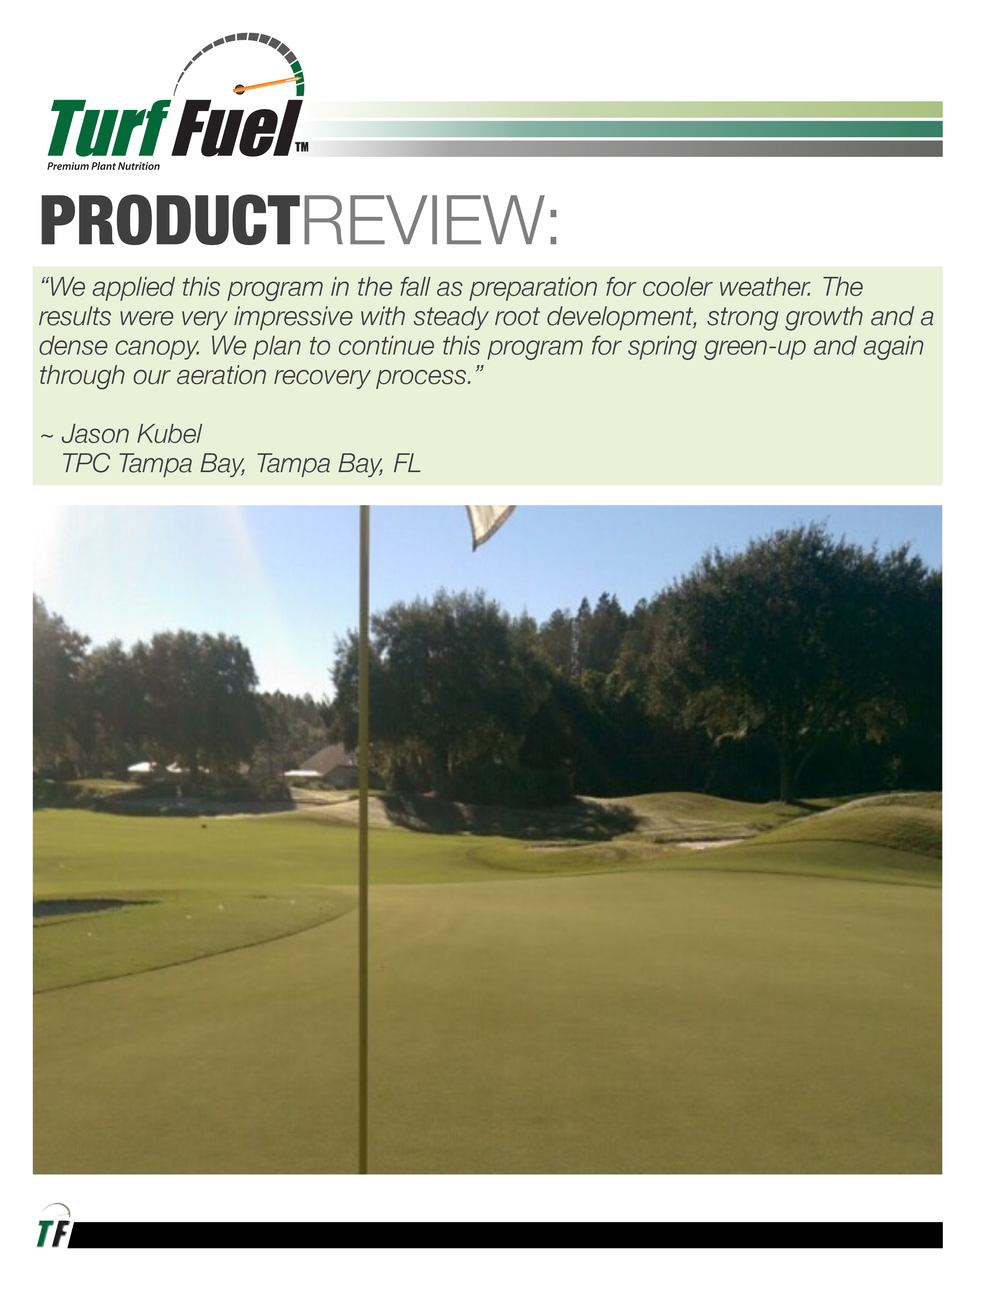 PRODUCT REVIEW TPC Tampa Bay